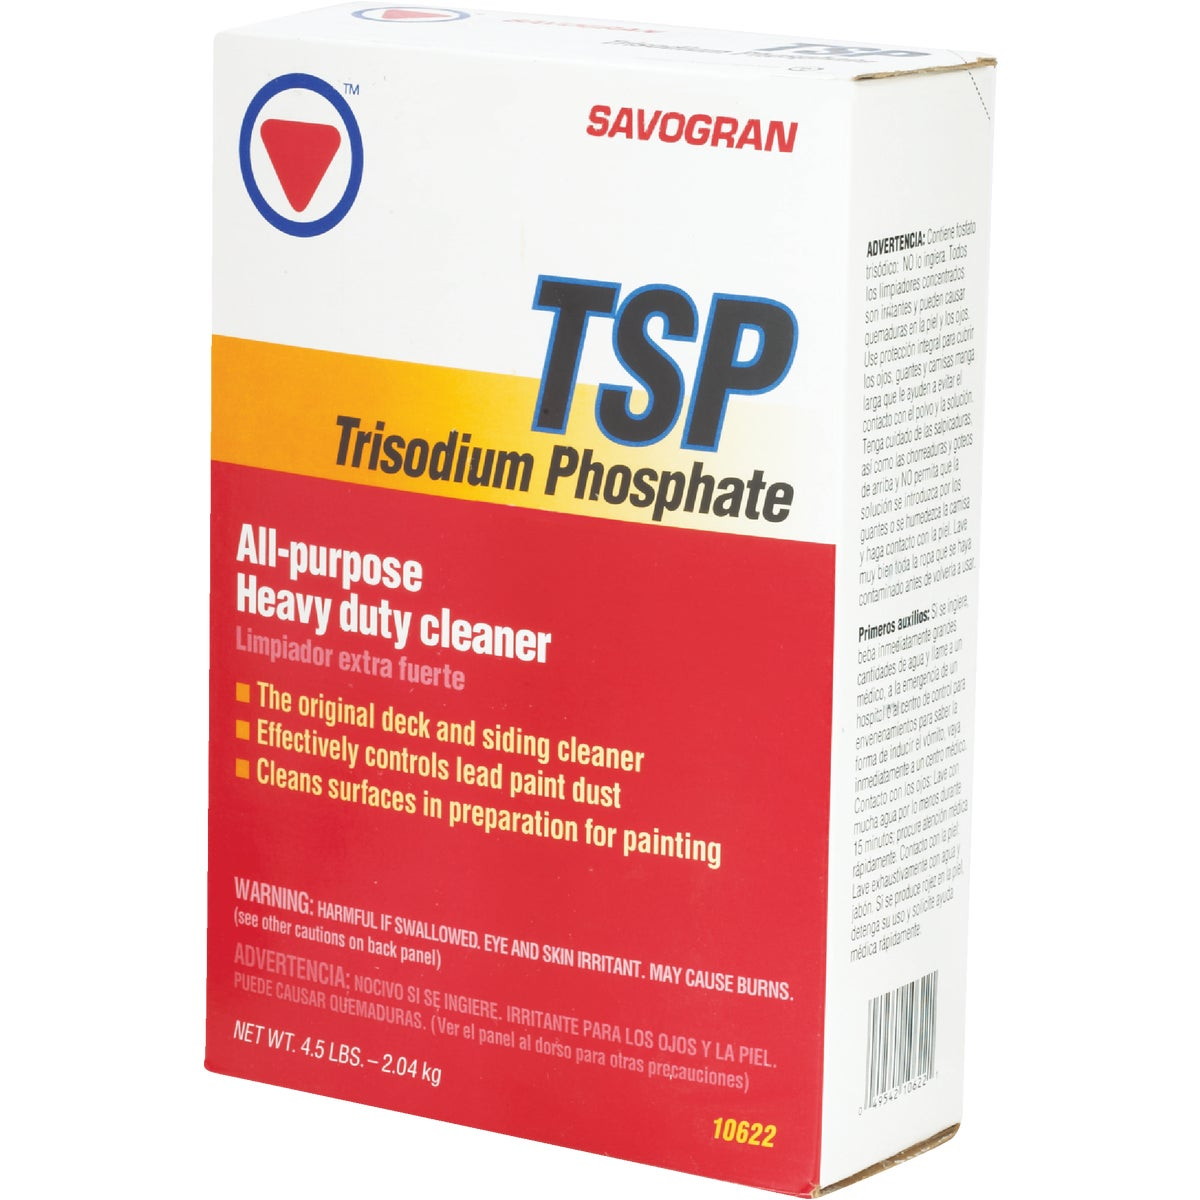 Trisodium Phosphate (TSP) Cleaner